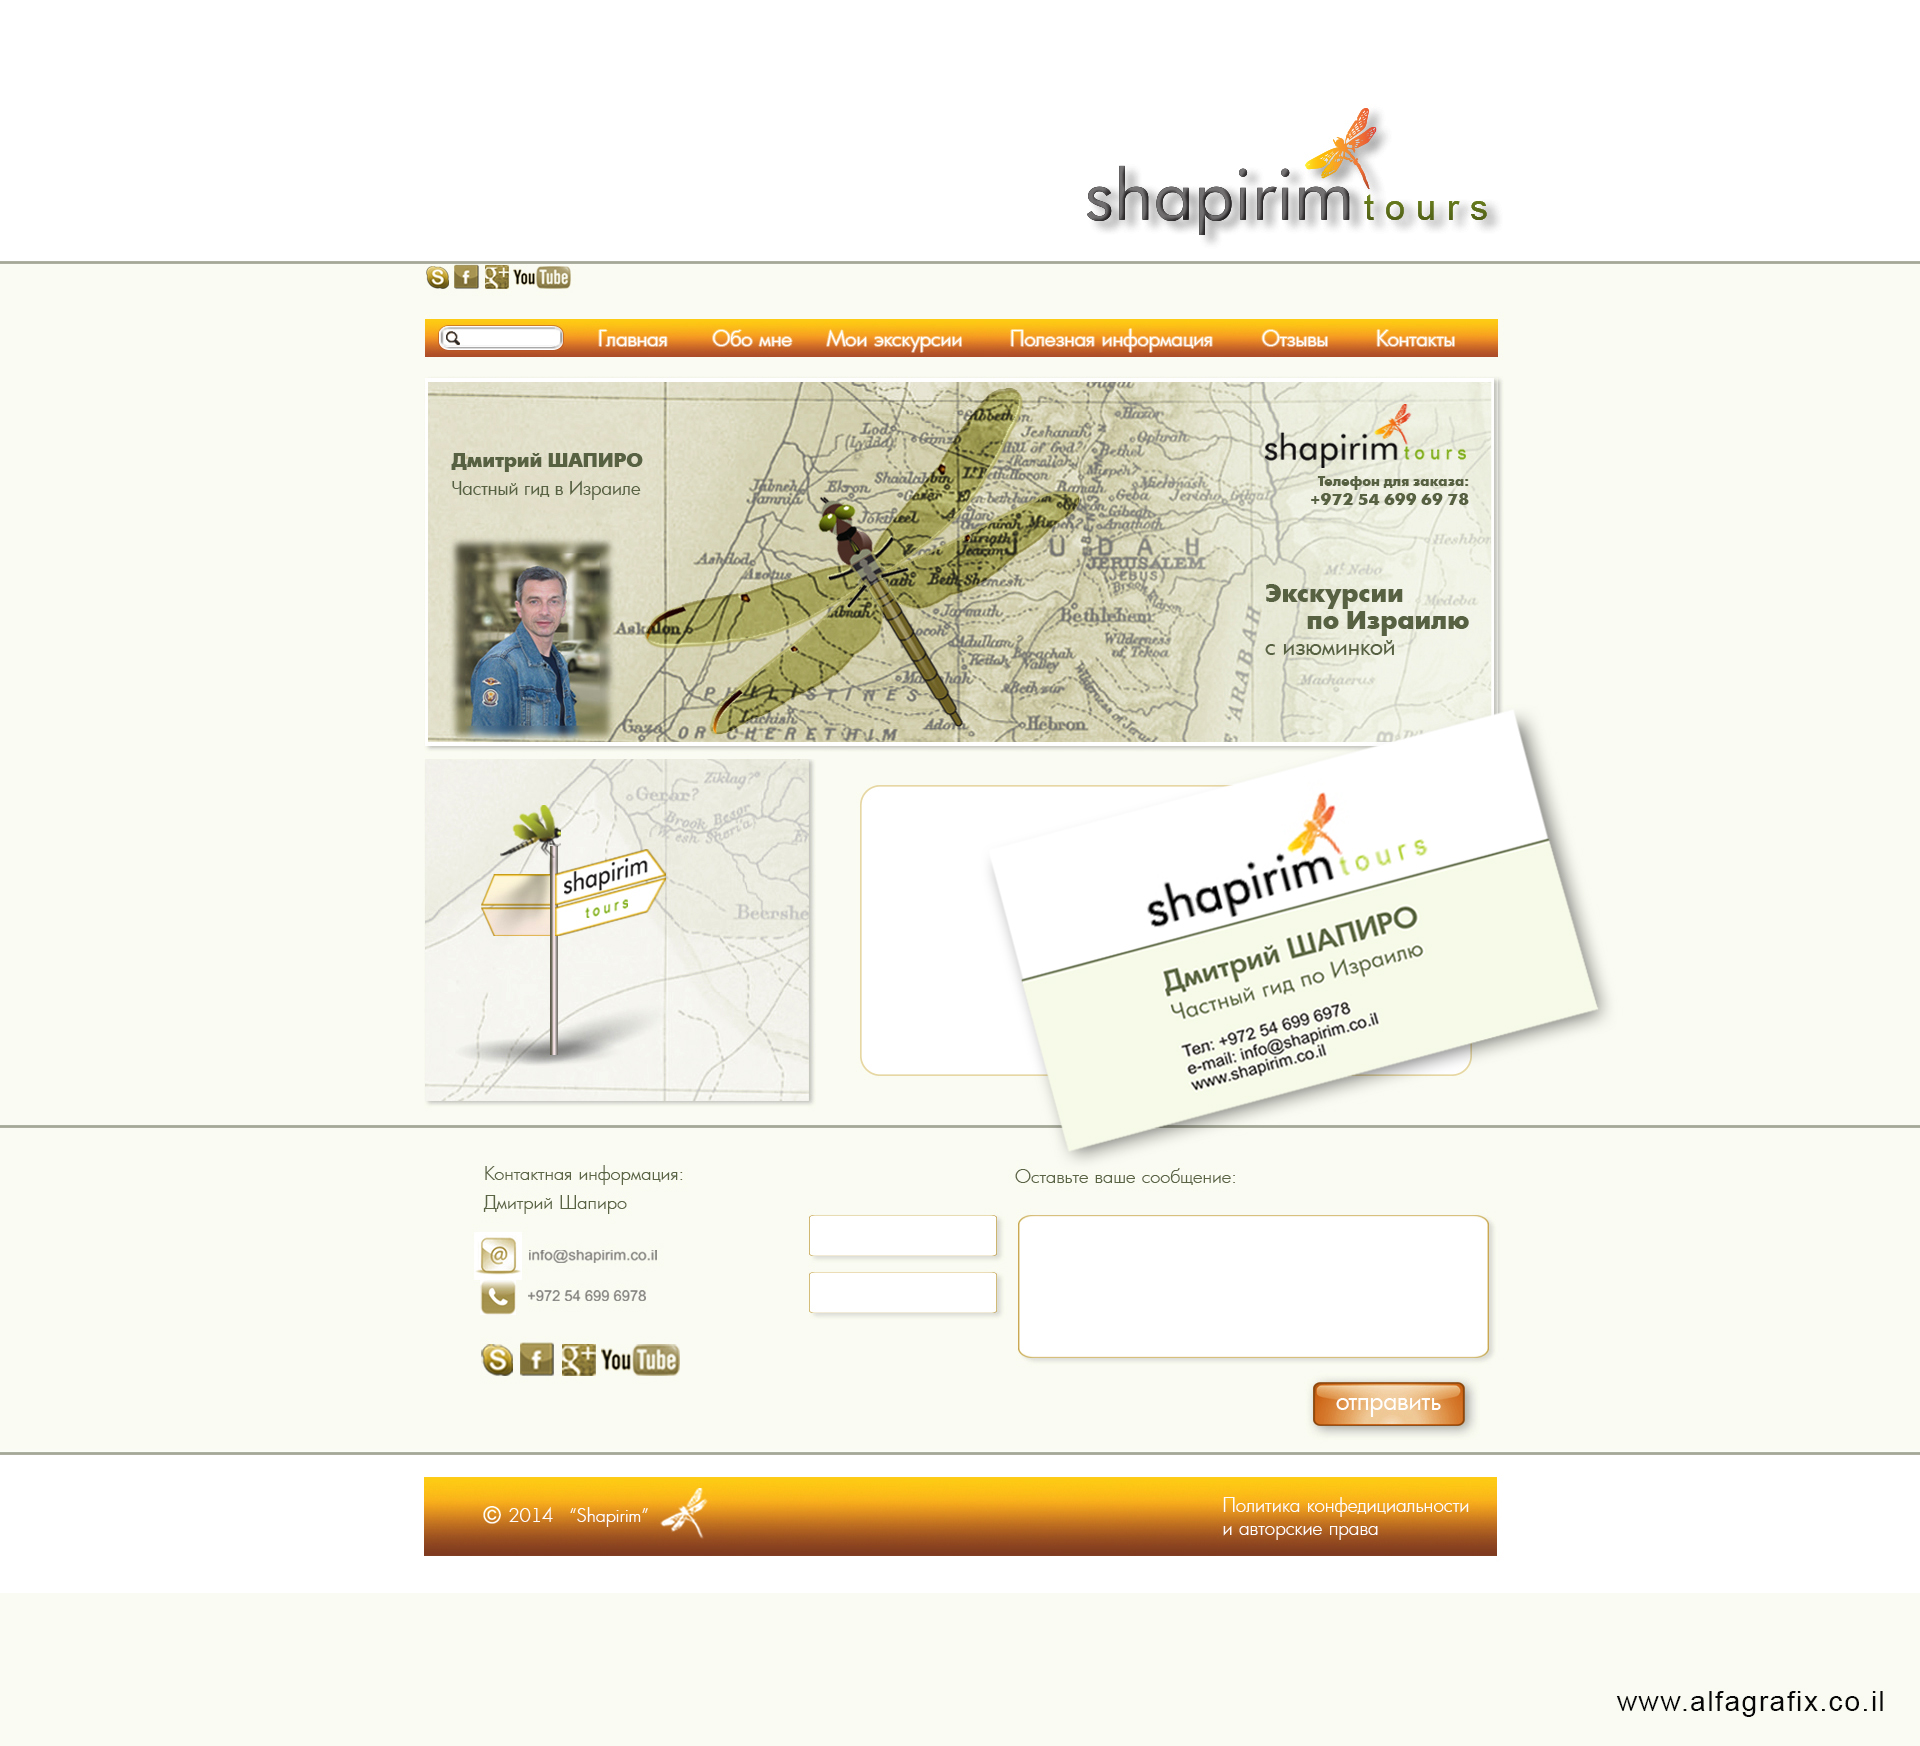 shapirim-site